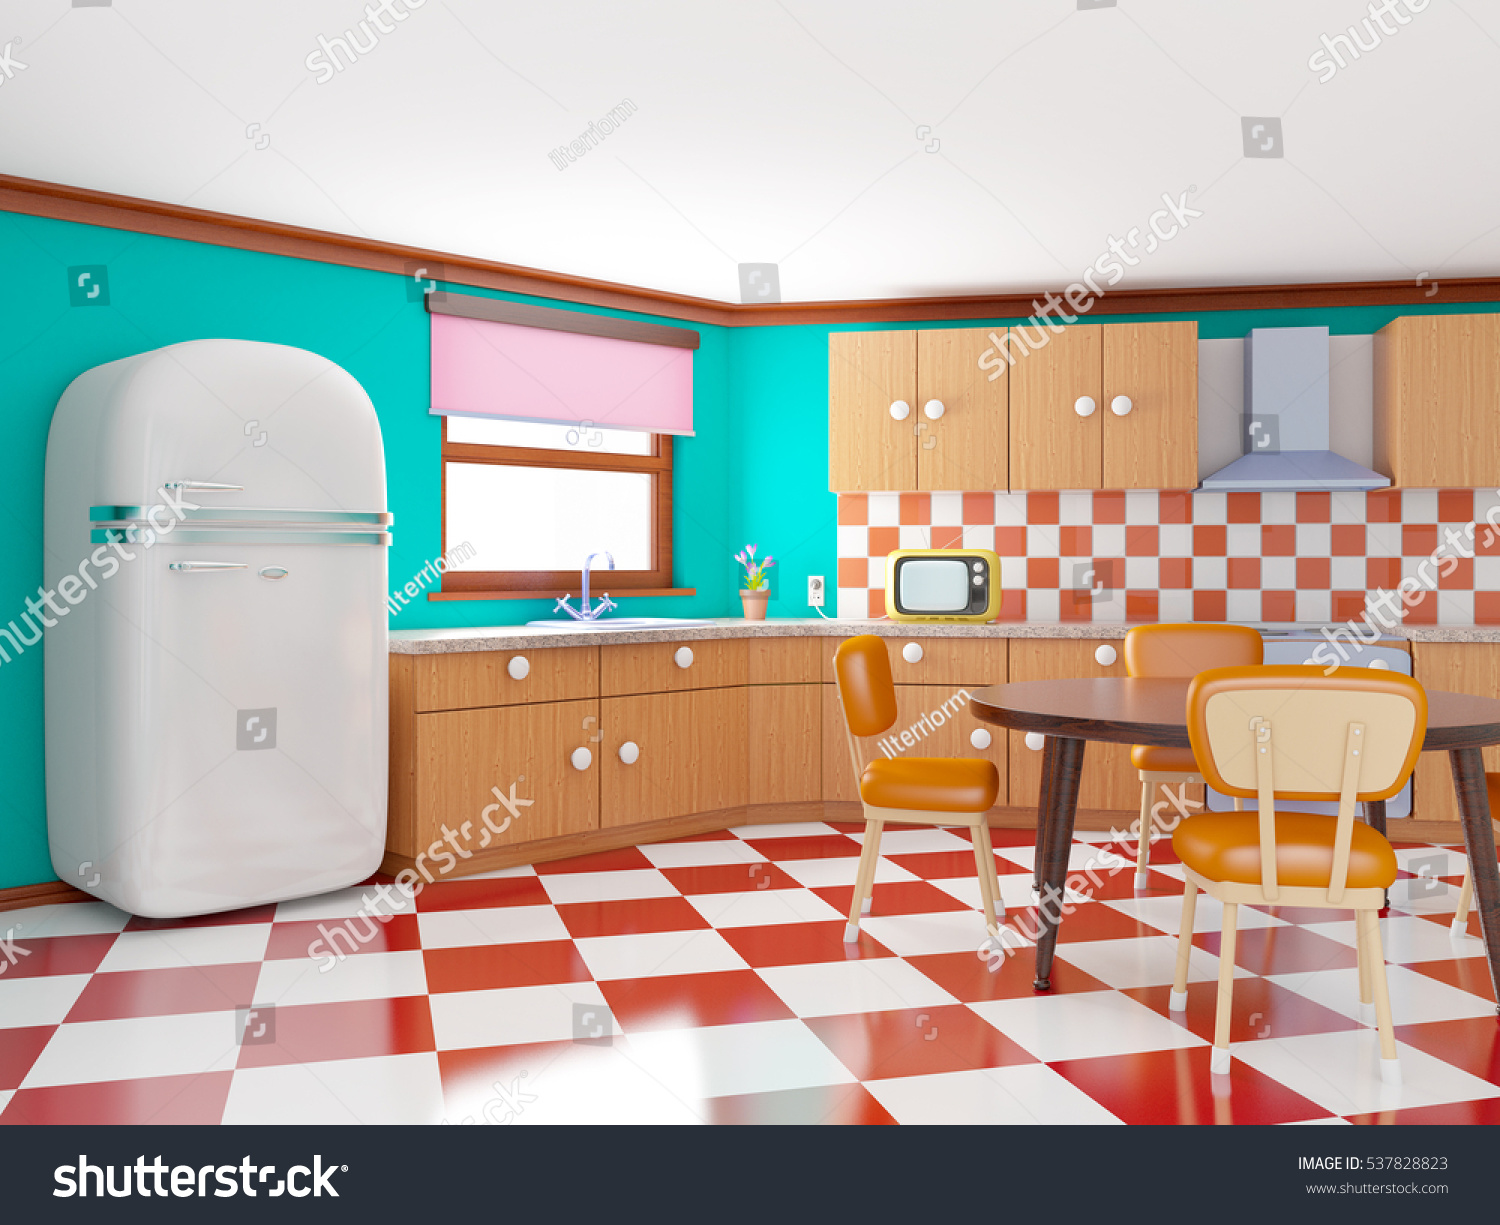 Retro Kitchen Floor Retro Kitchen Cartoon Style Checkered Floor Stock Illustration